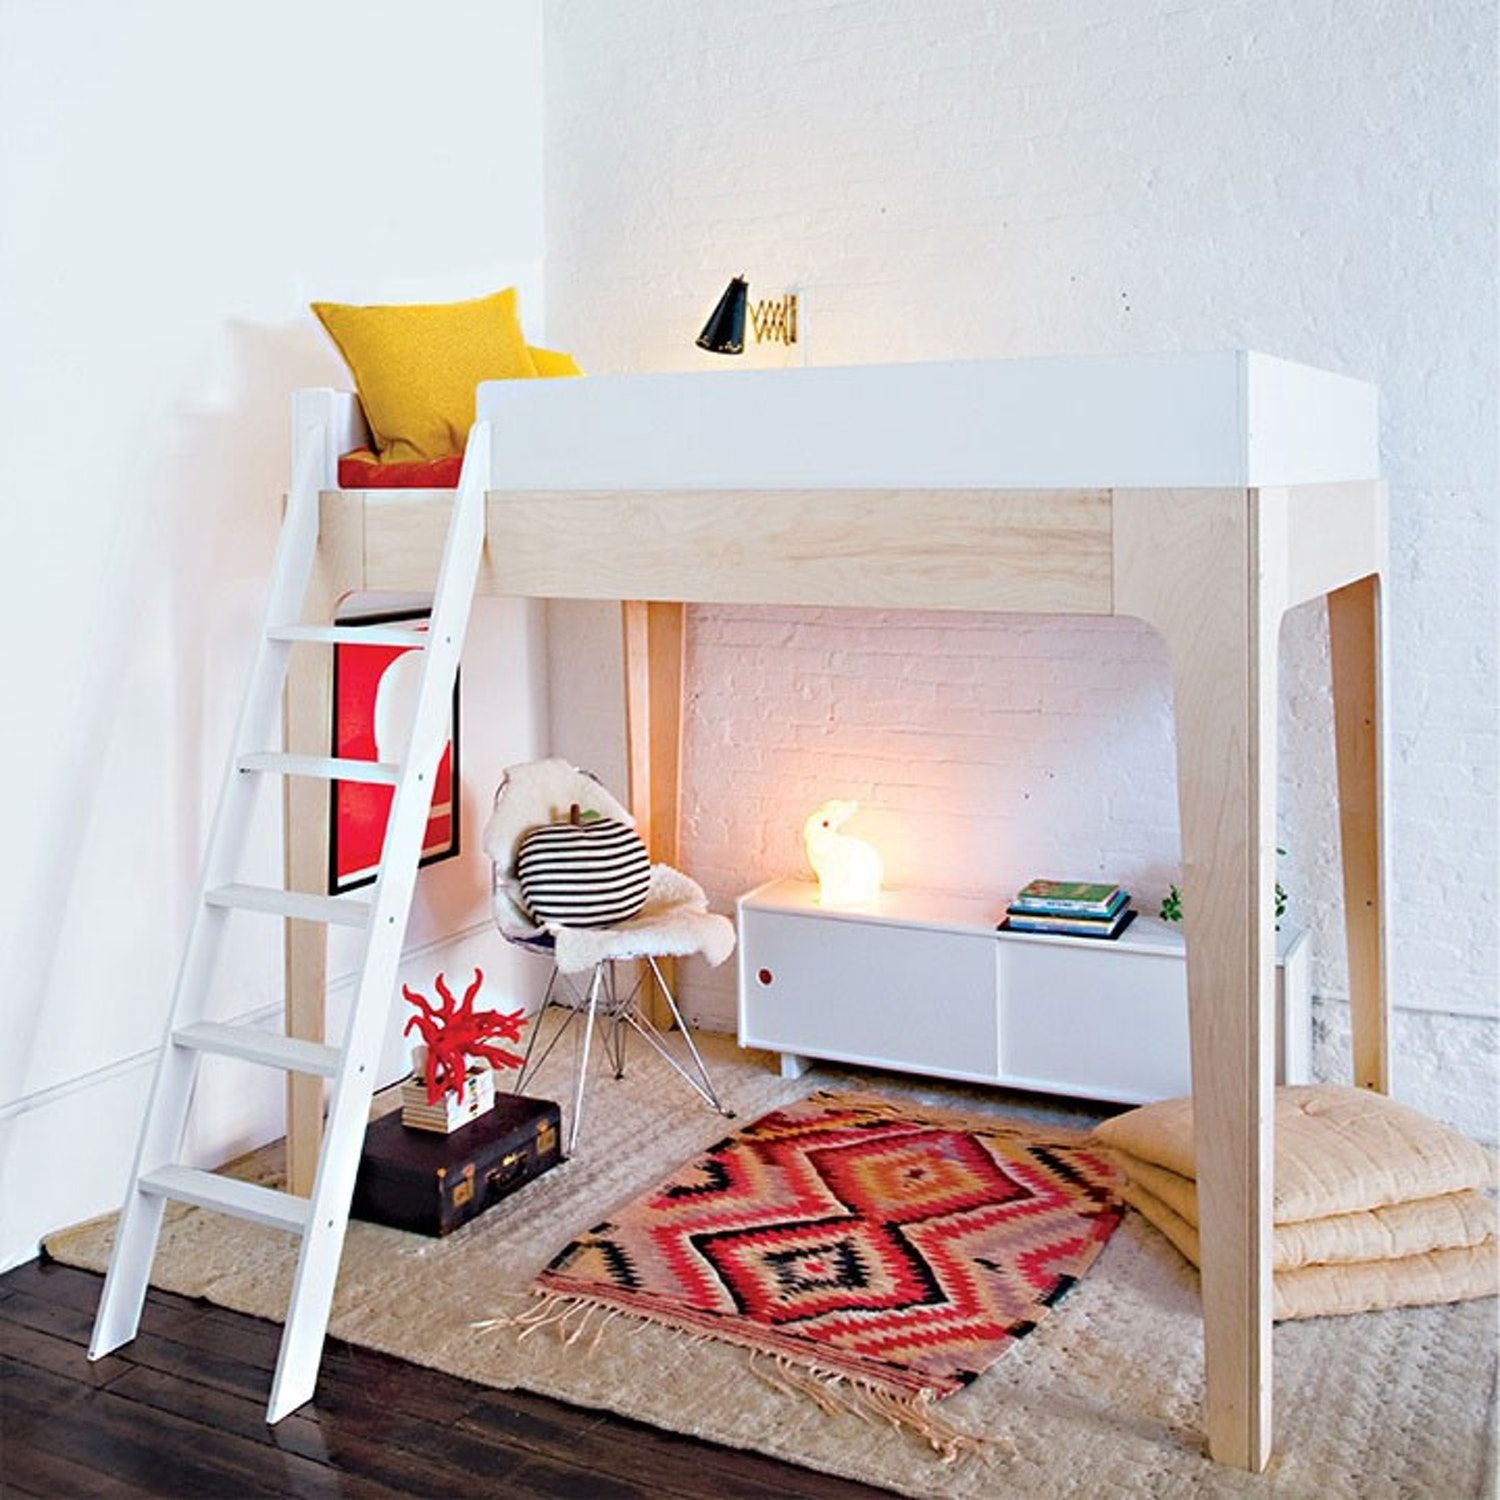 Loft bedroom staircase   Full Size Modern Loft Beds for Your Tiny Apartment  Modern lofts